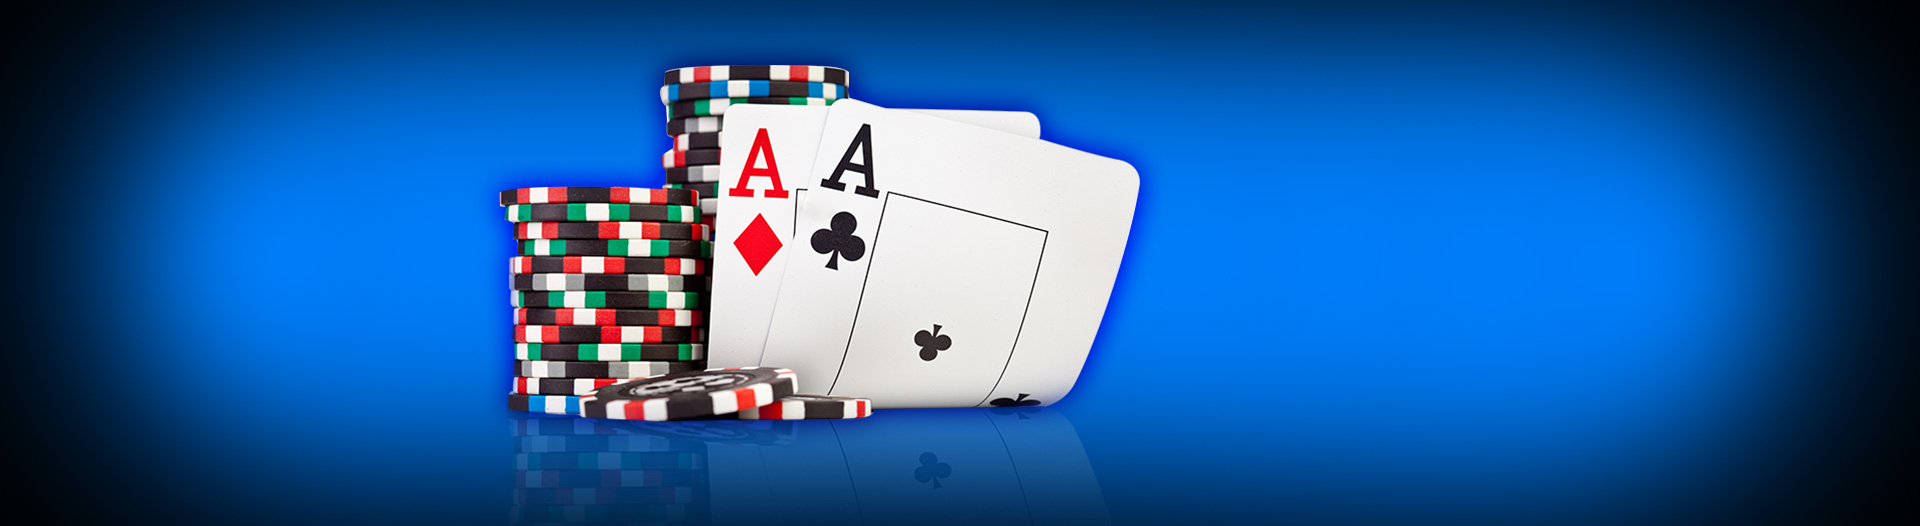 888 poker download free